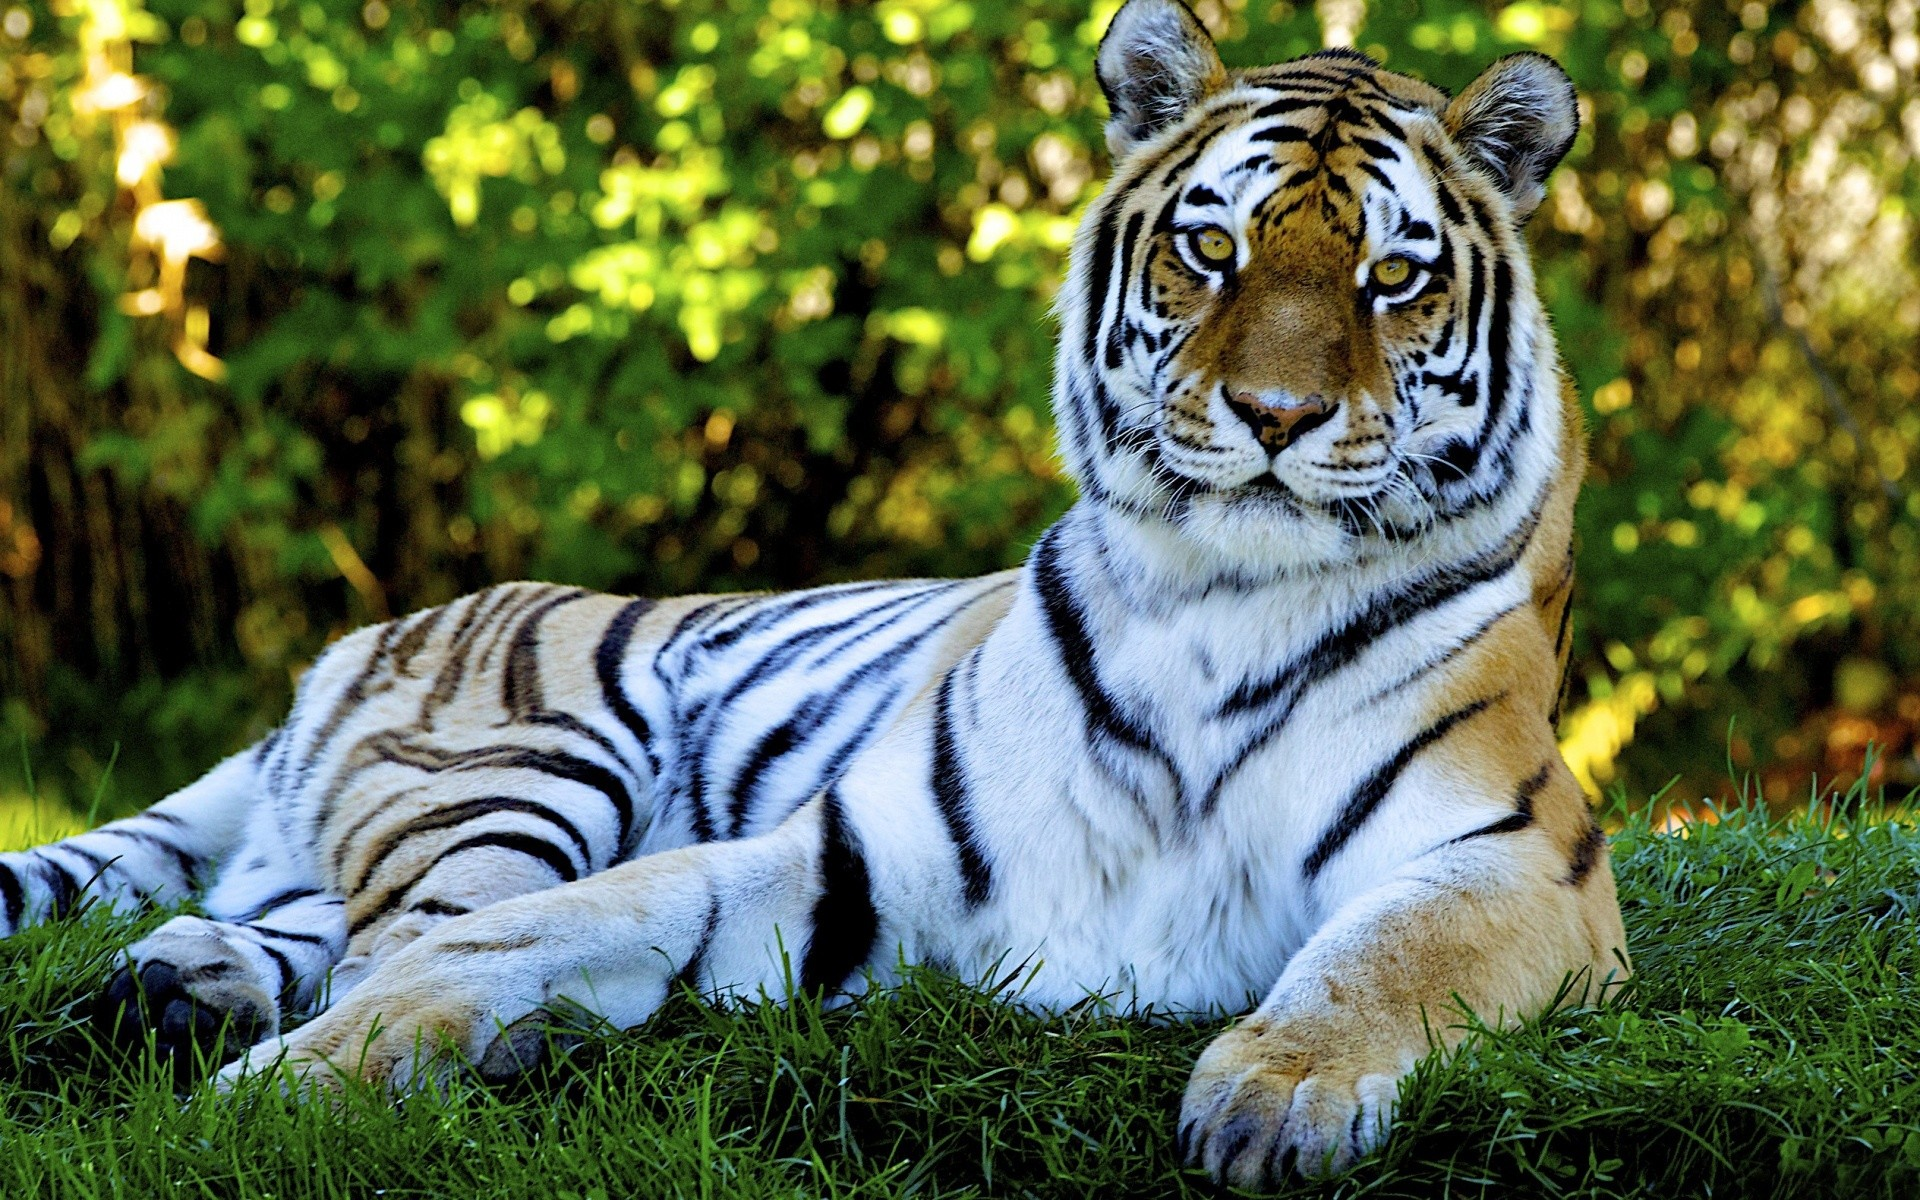 1920x1200 Animated Nature Wallpapers For Desktop - Tiger desktop backgrounds - Tiger desktop  backgrounds Wallpaper